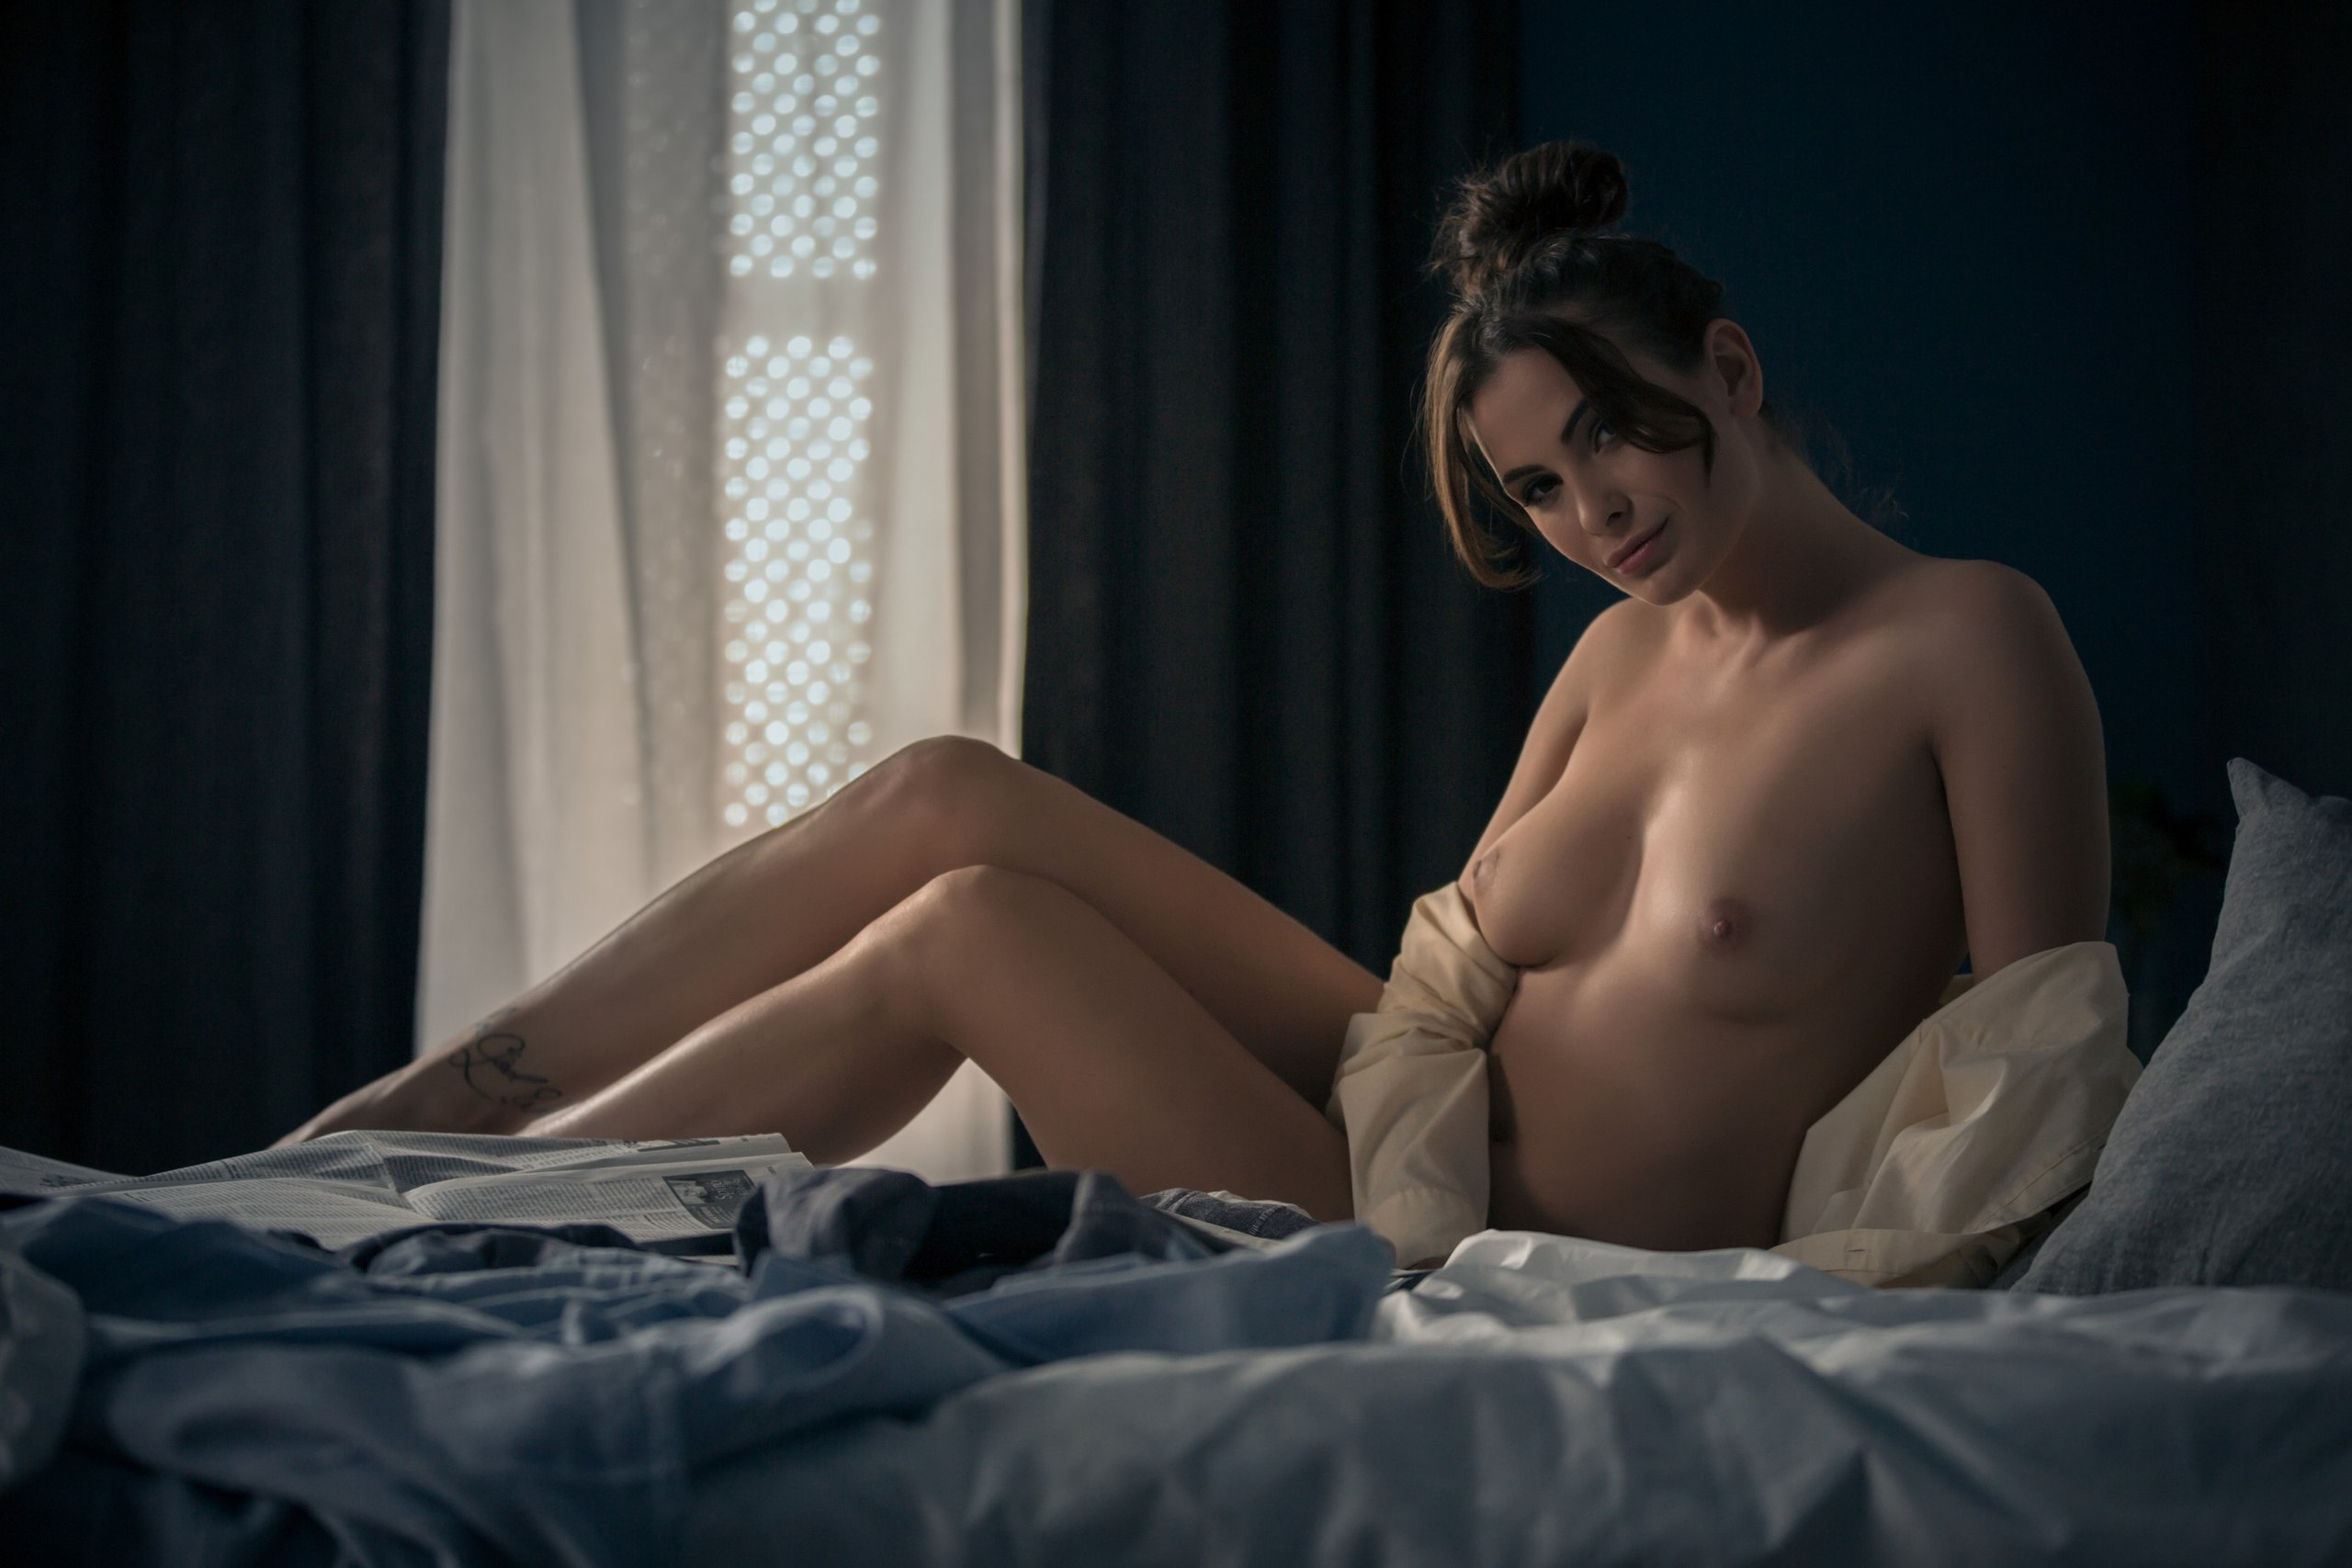 Girls of cosmo nude final